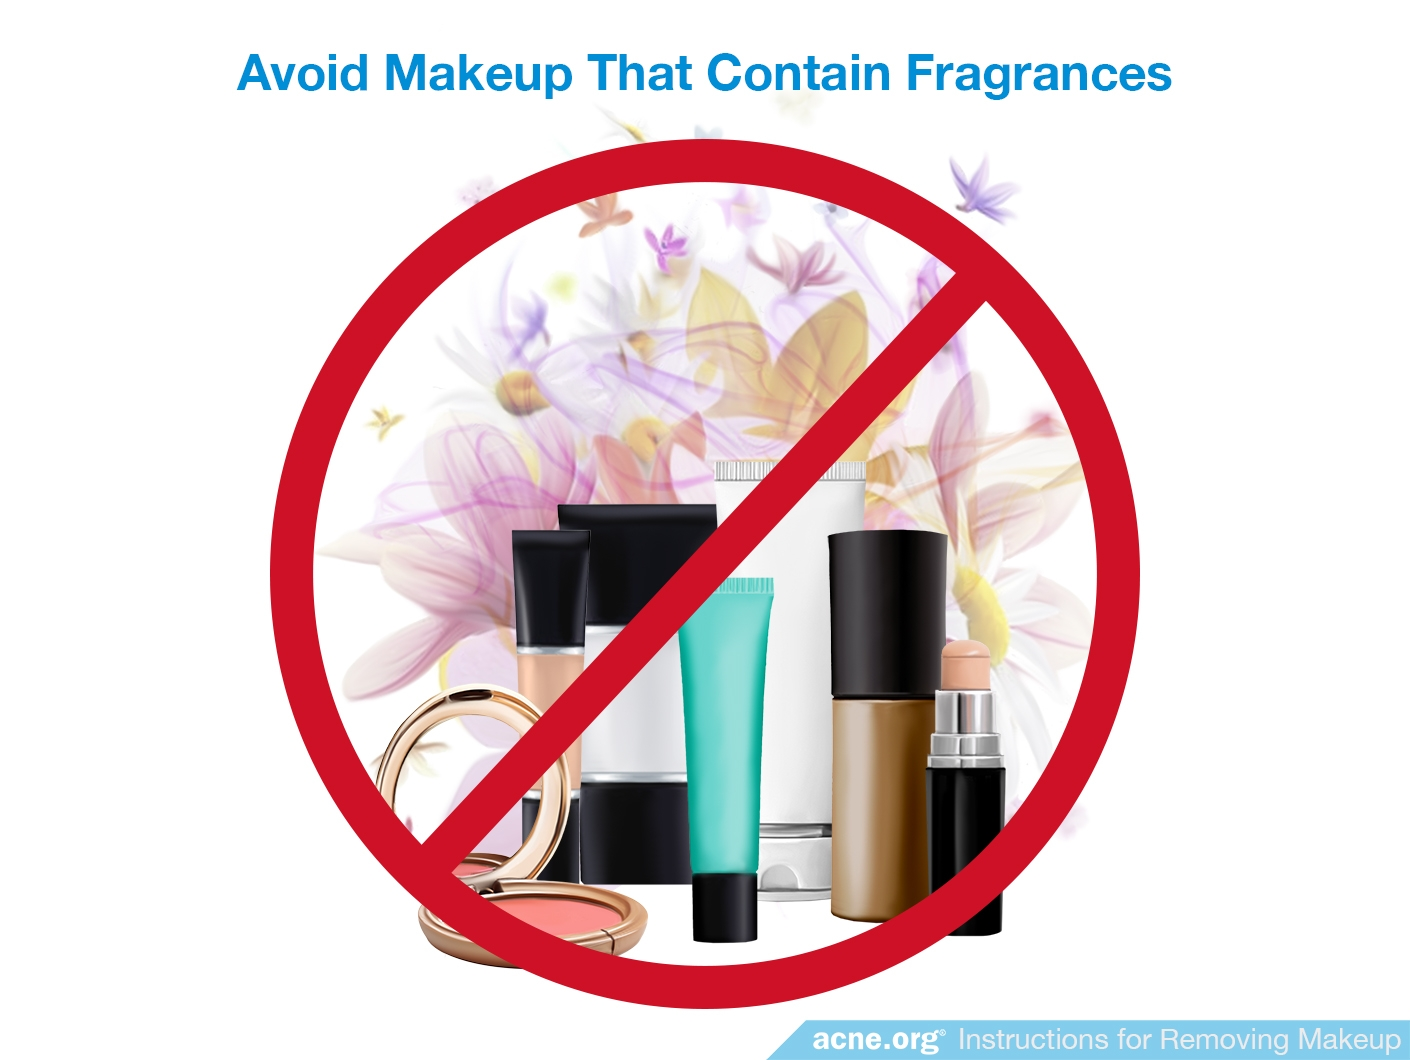 Avoid Makeup Containing Fragrance